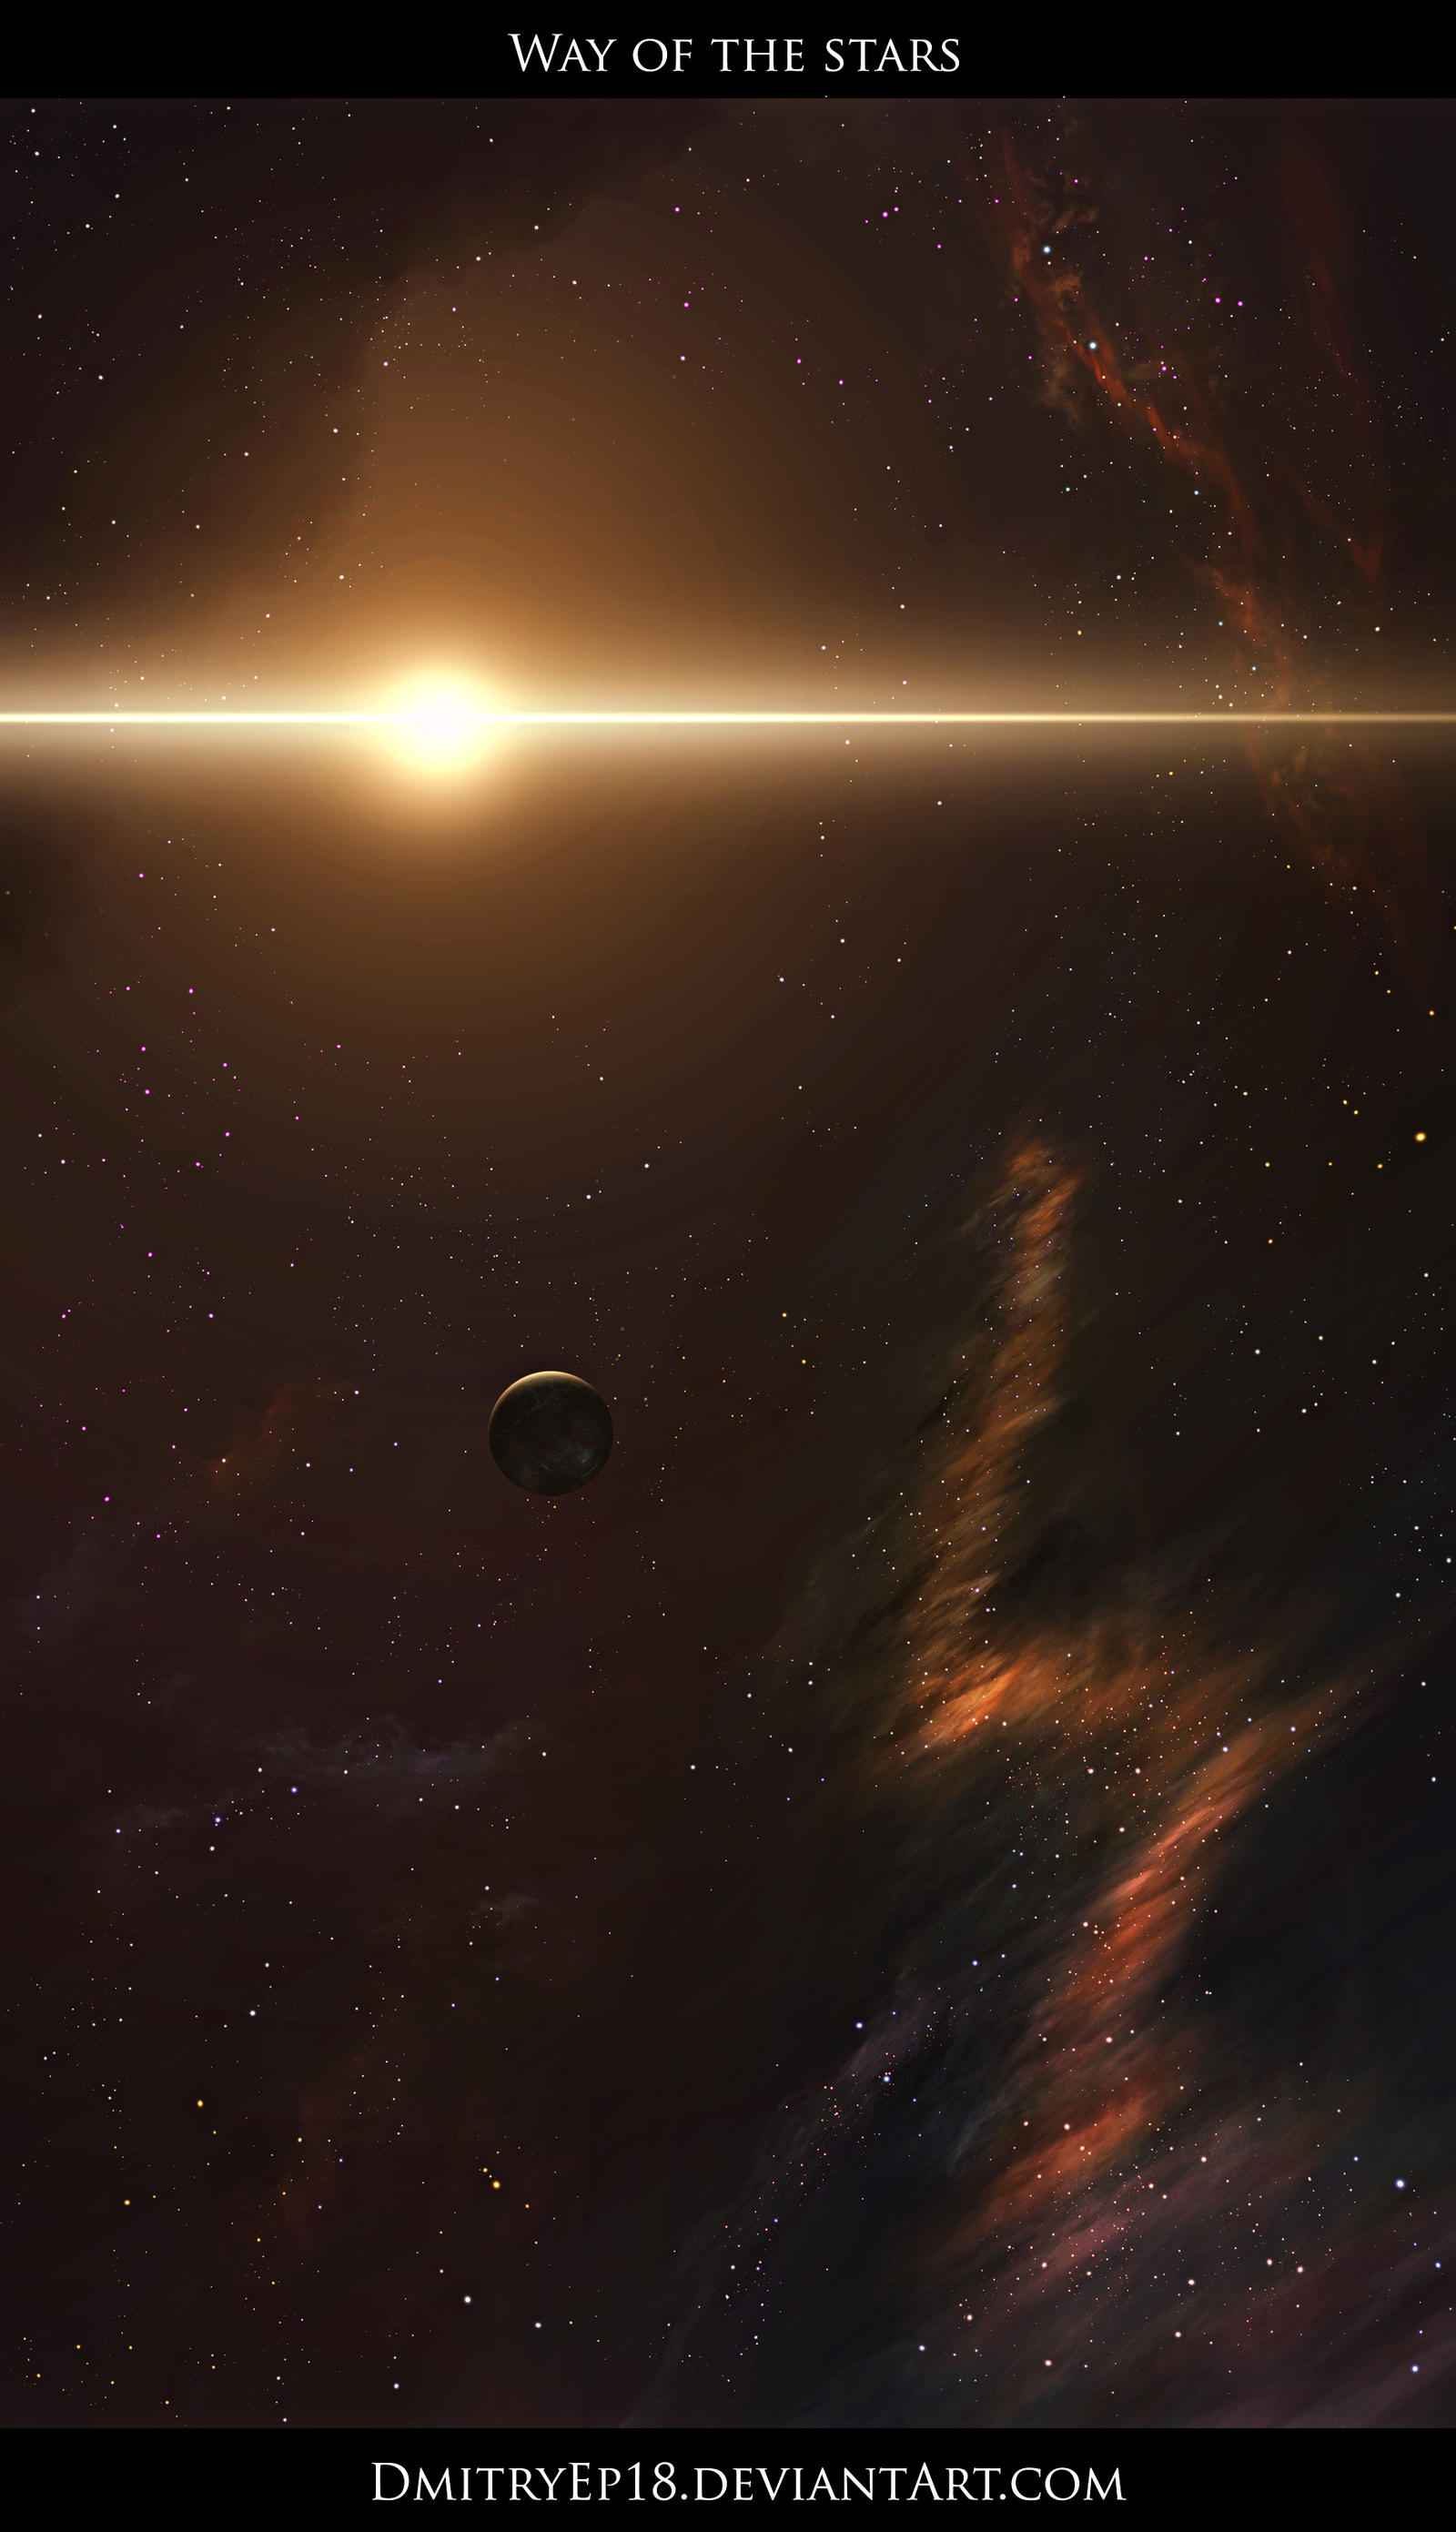 Way of the stars by DmitryEp18